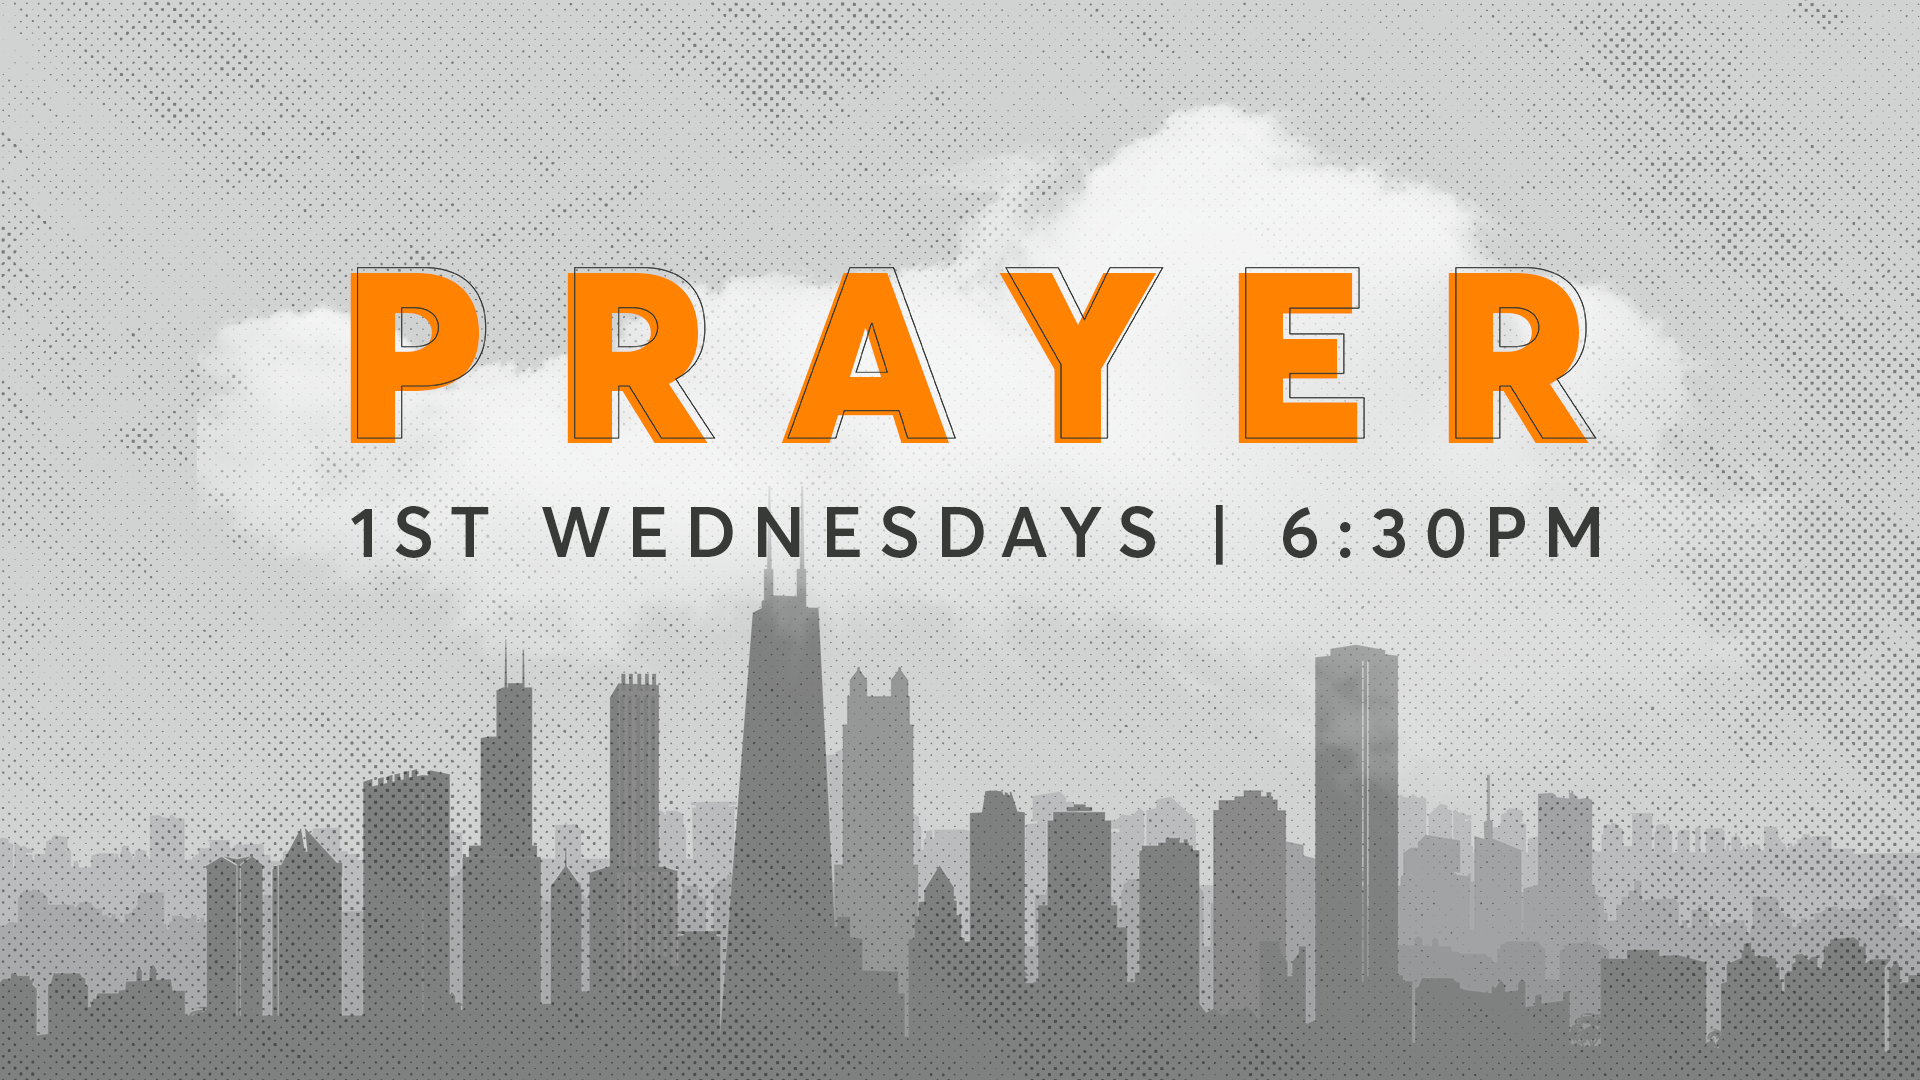 JOIN US THIS WEDNESDAY OCT 2 - 6:30PM AT 3850 W MONTROSE FOR PRAYER MEETING.